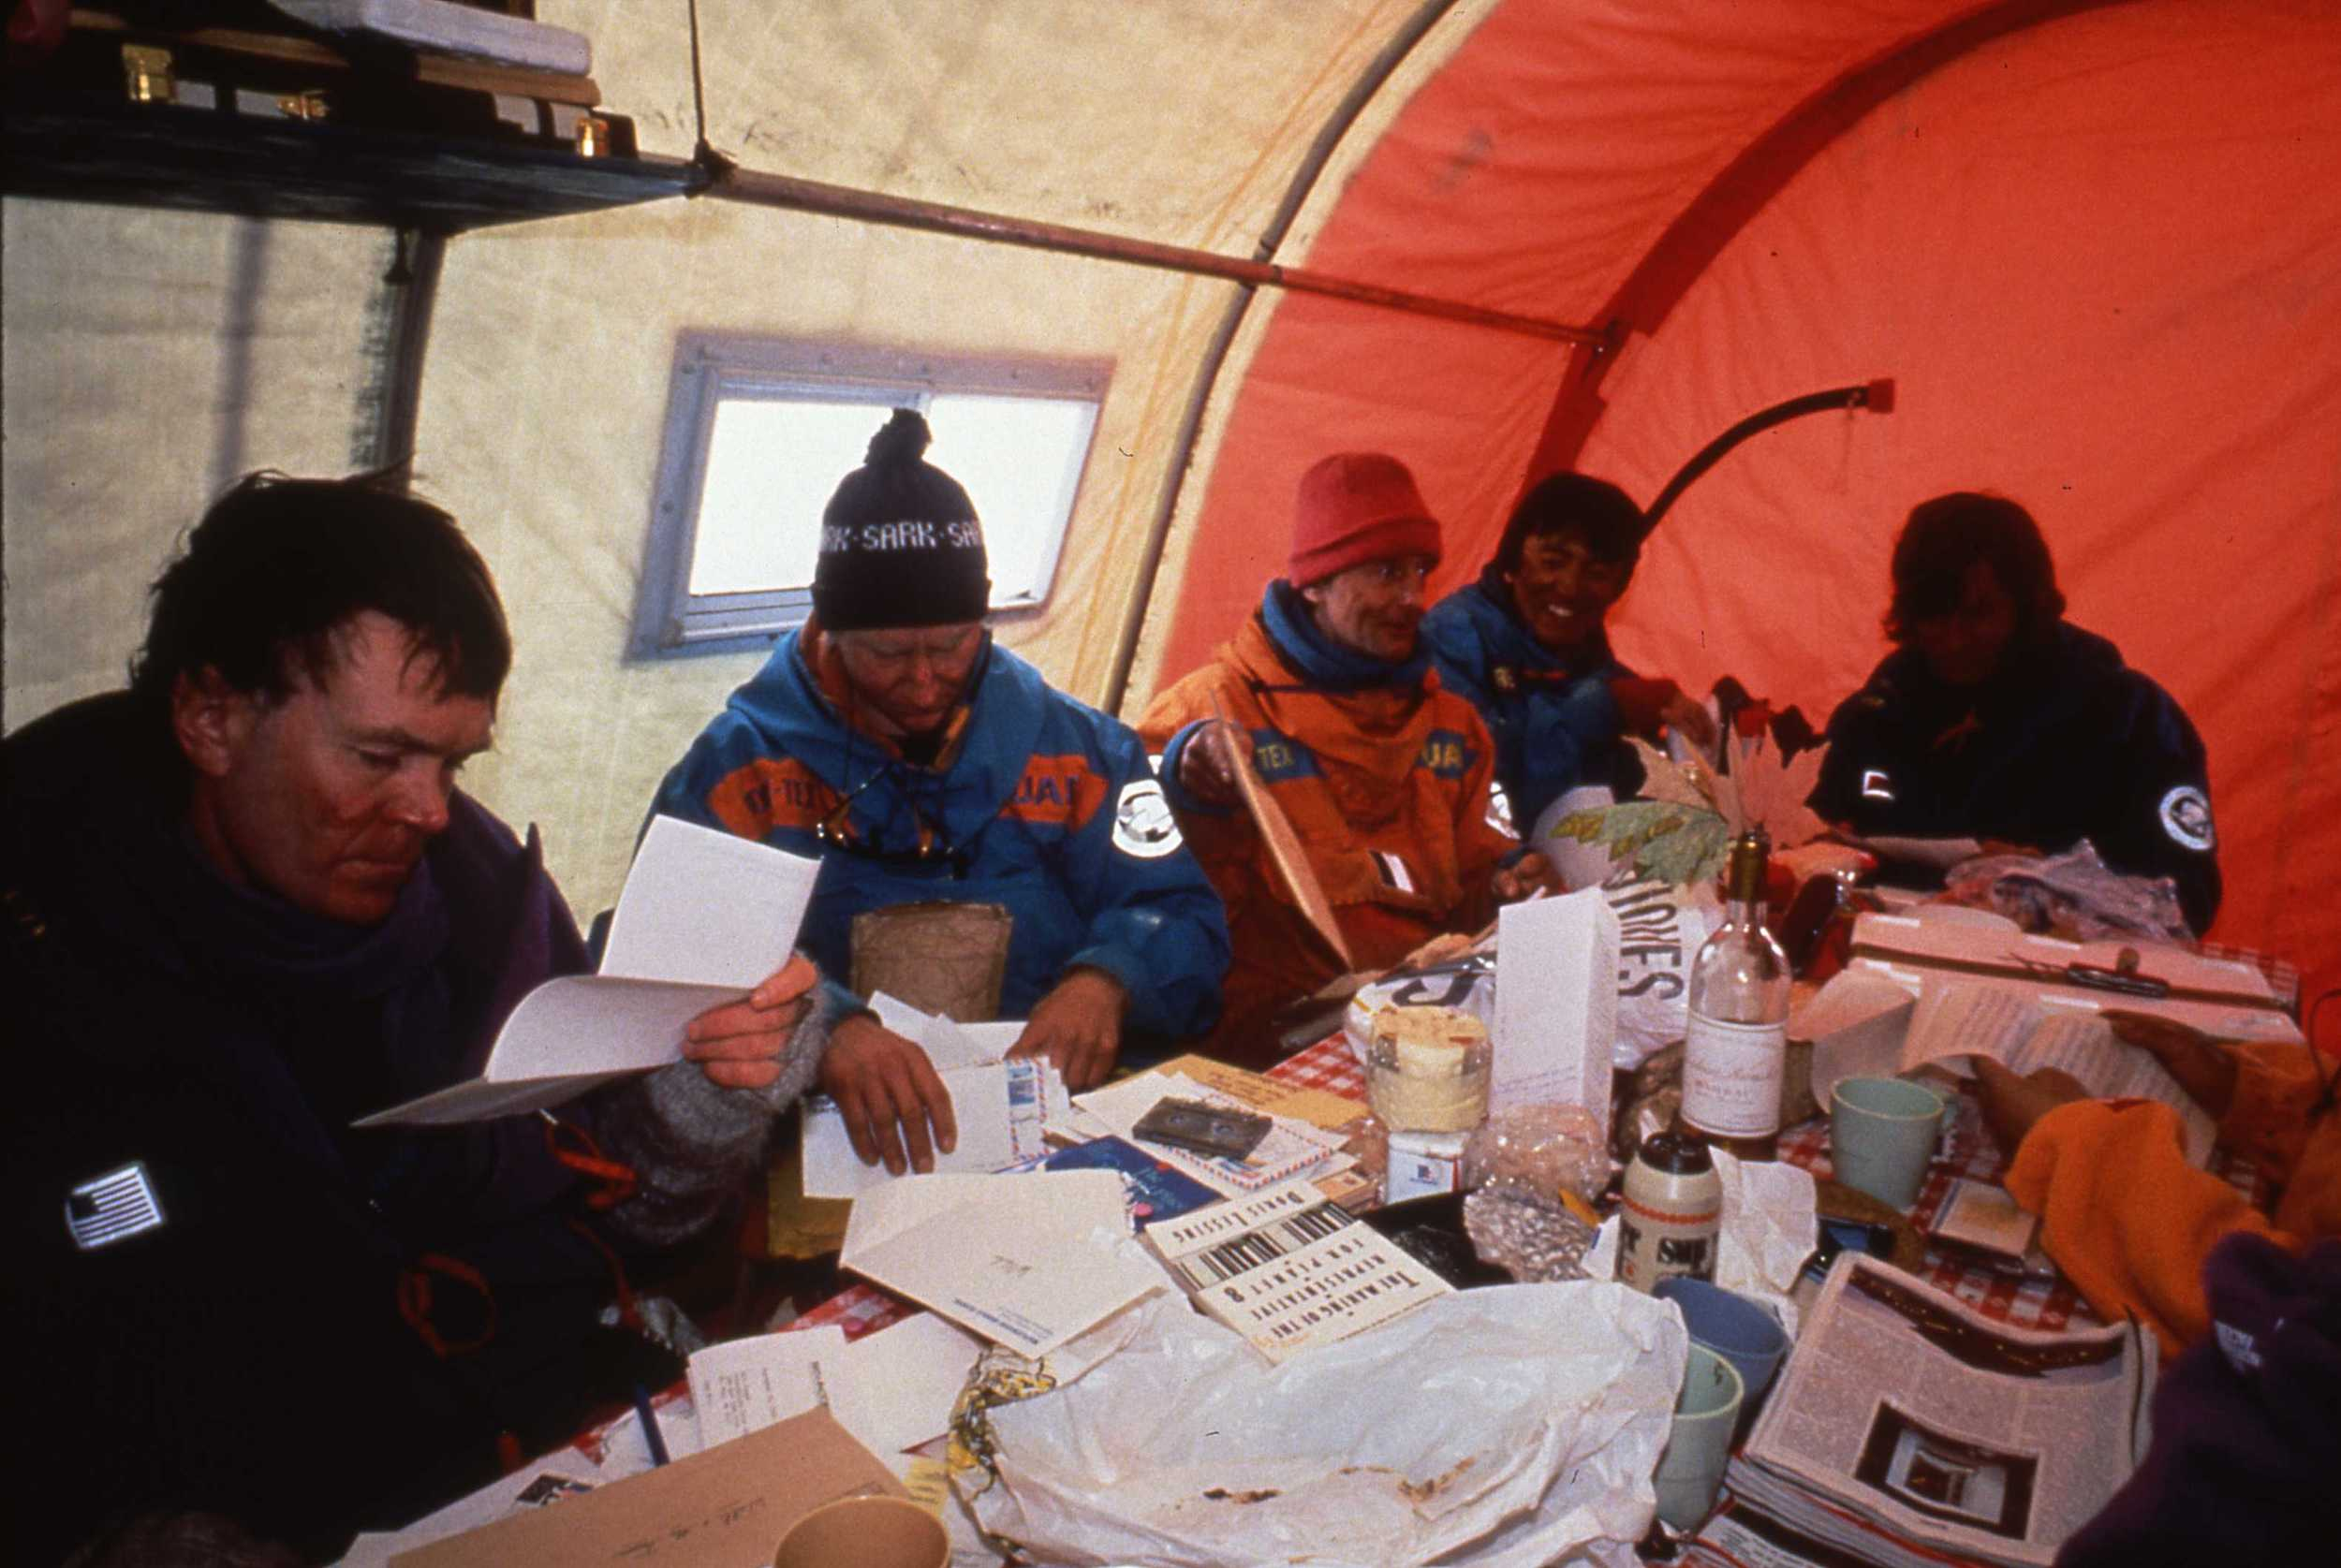 Jacqui Banaszynski delivered piles of mail to the expedition team at Patriot Hills. ©Will Steger by Francis Latreille